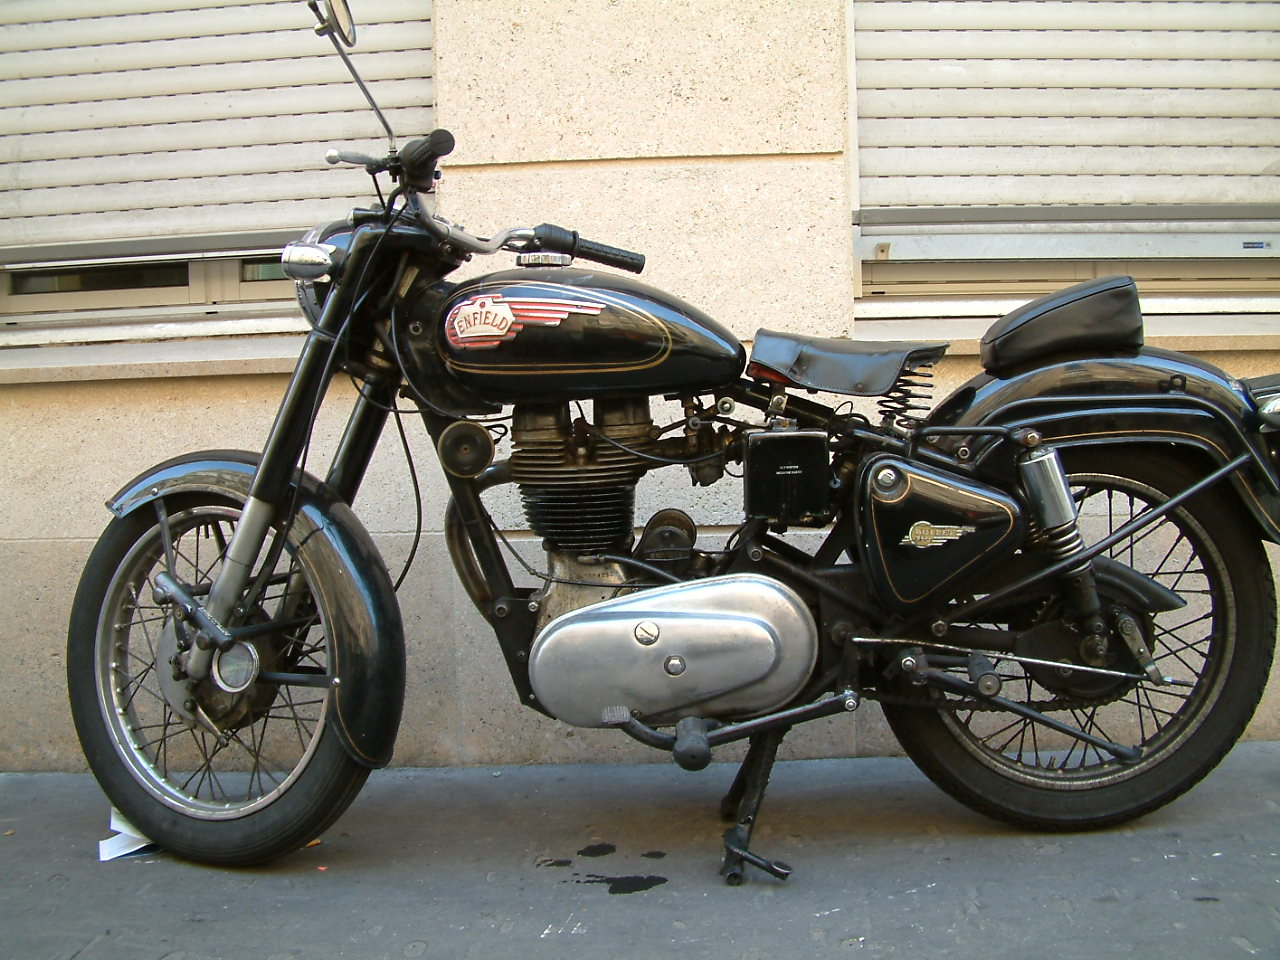 Enfield 500 Bullet (reduced effect) 1991 #5